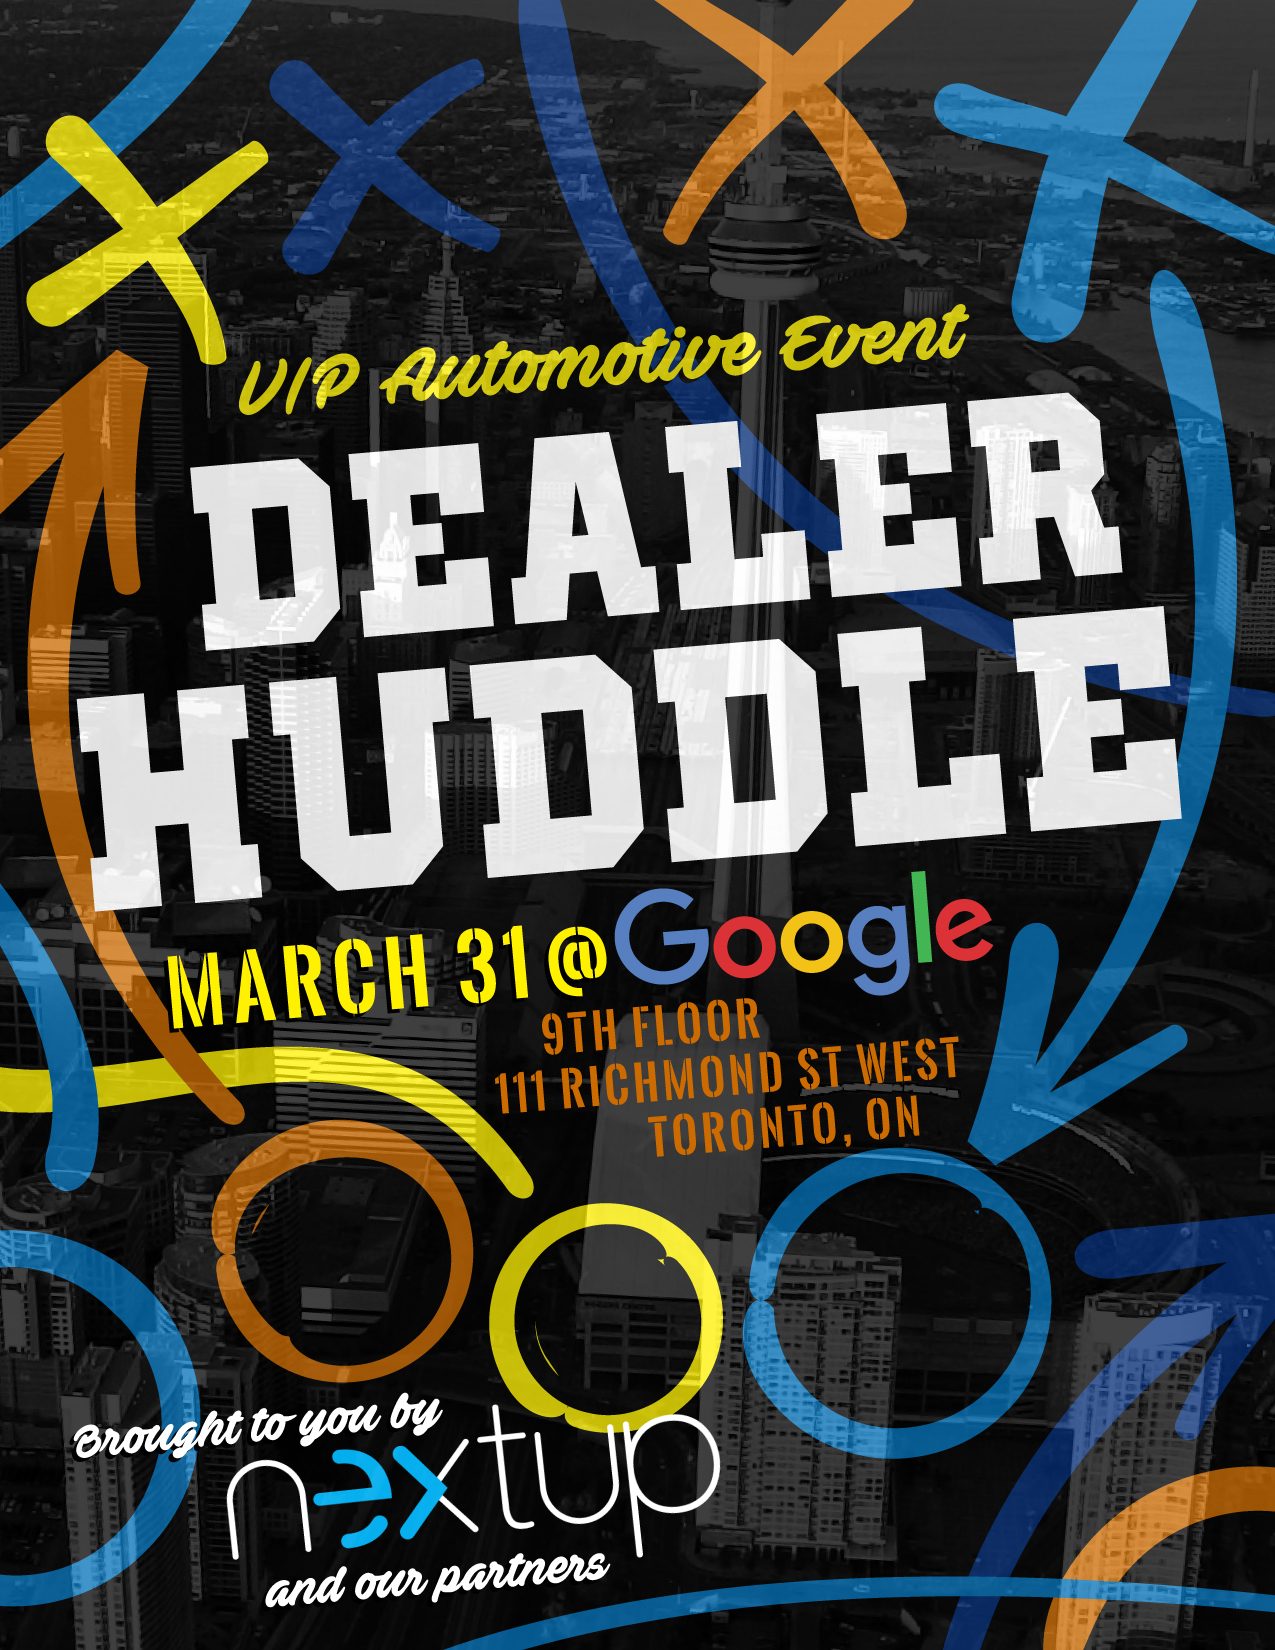 dealer huddle graphic